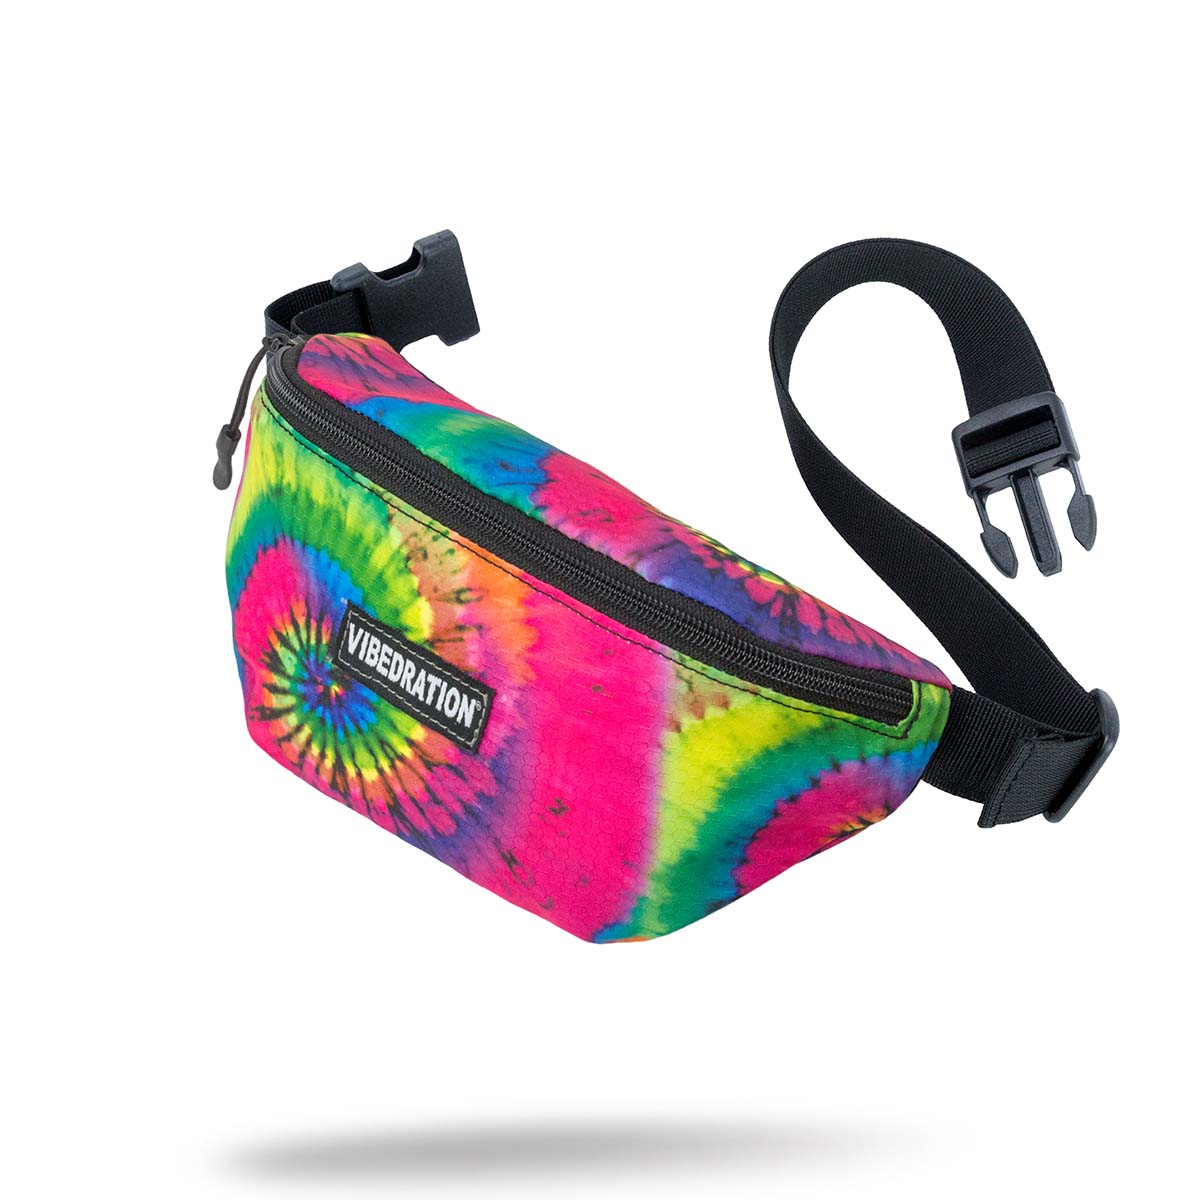 Tie-Dye Fanny Pack for Music Festivals